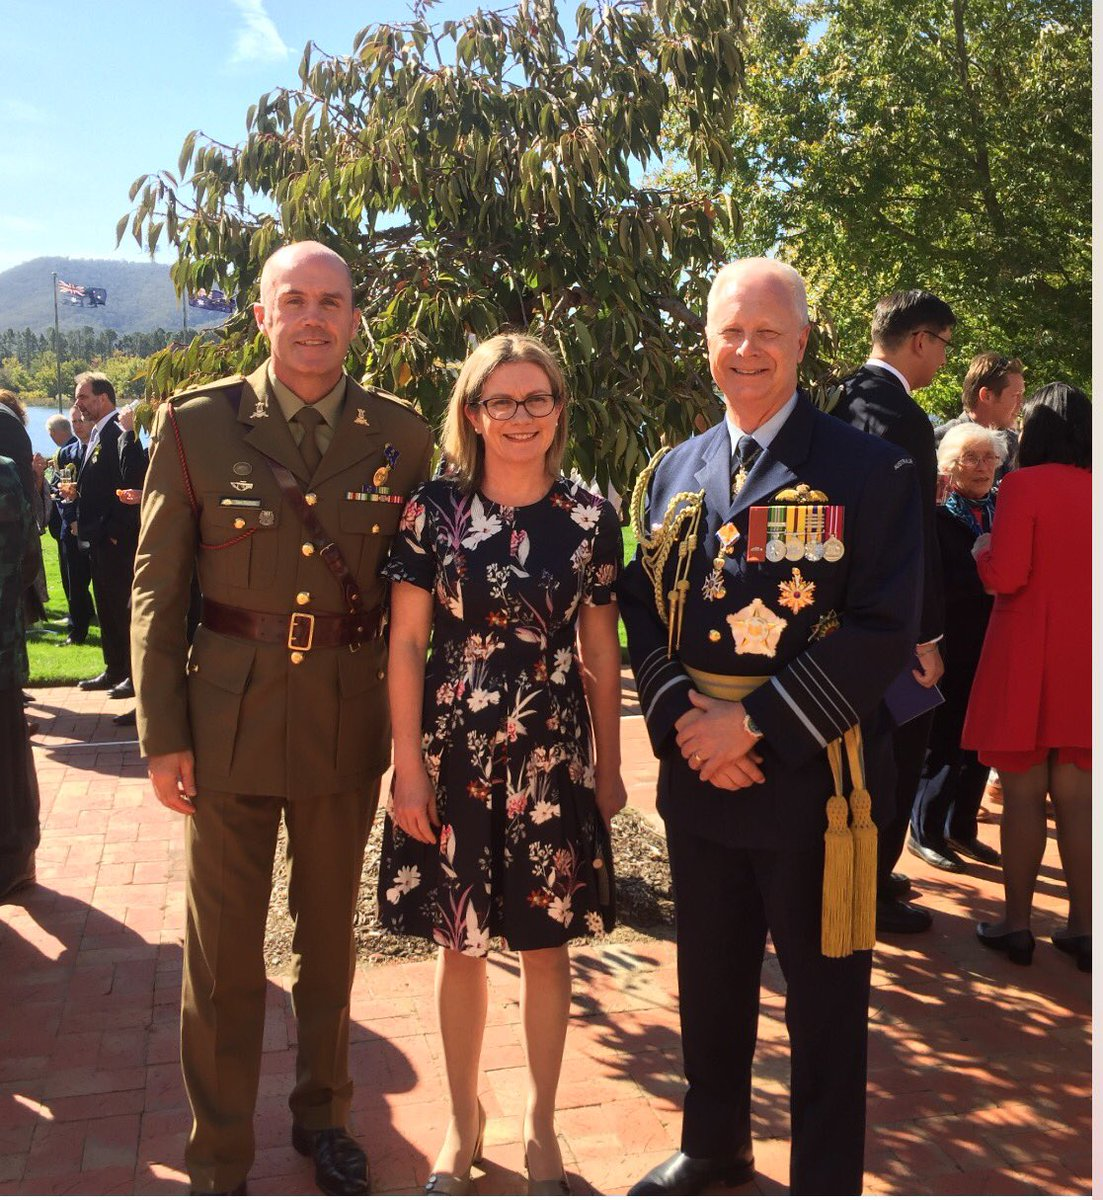 #YourADF is among 100+ Australians being recognised for their service to the country during investiture ceremonies at Government House this week